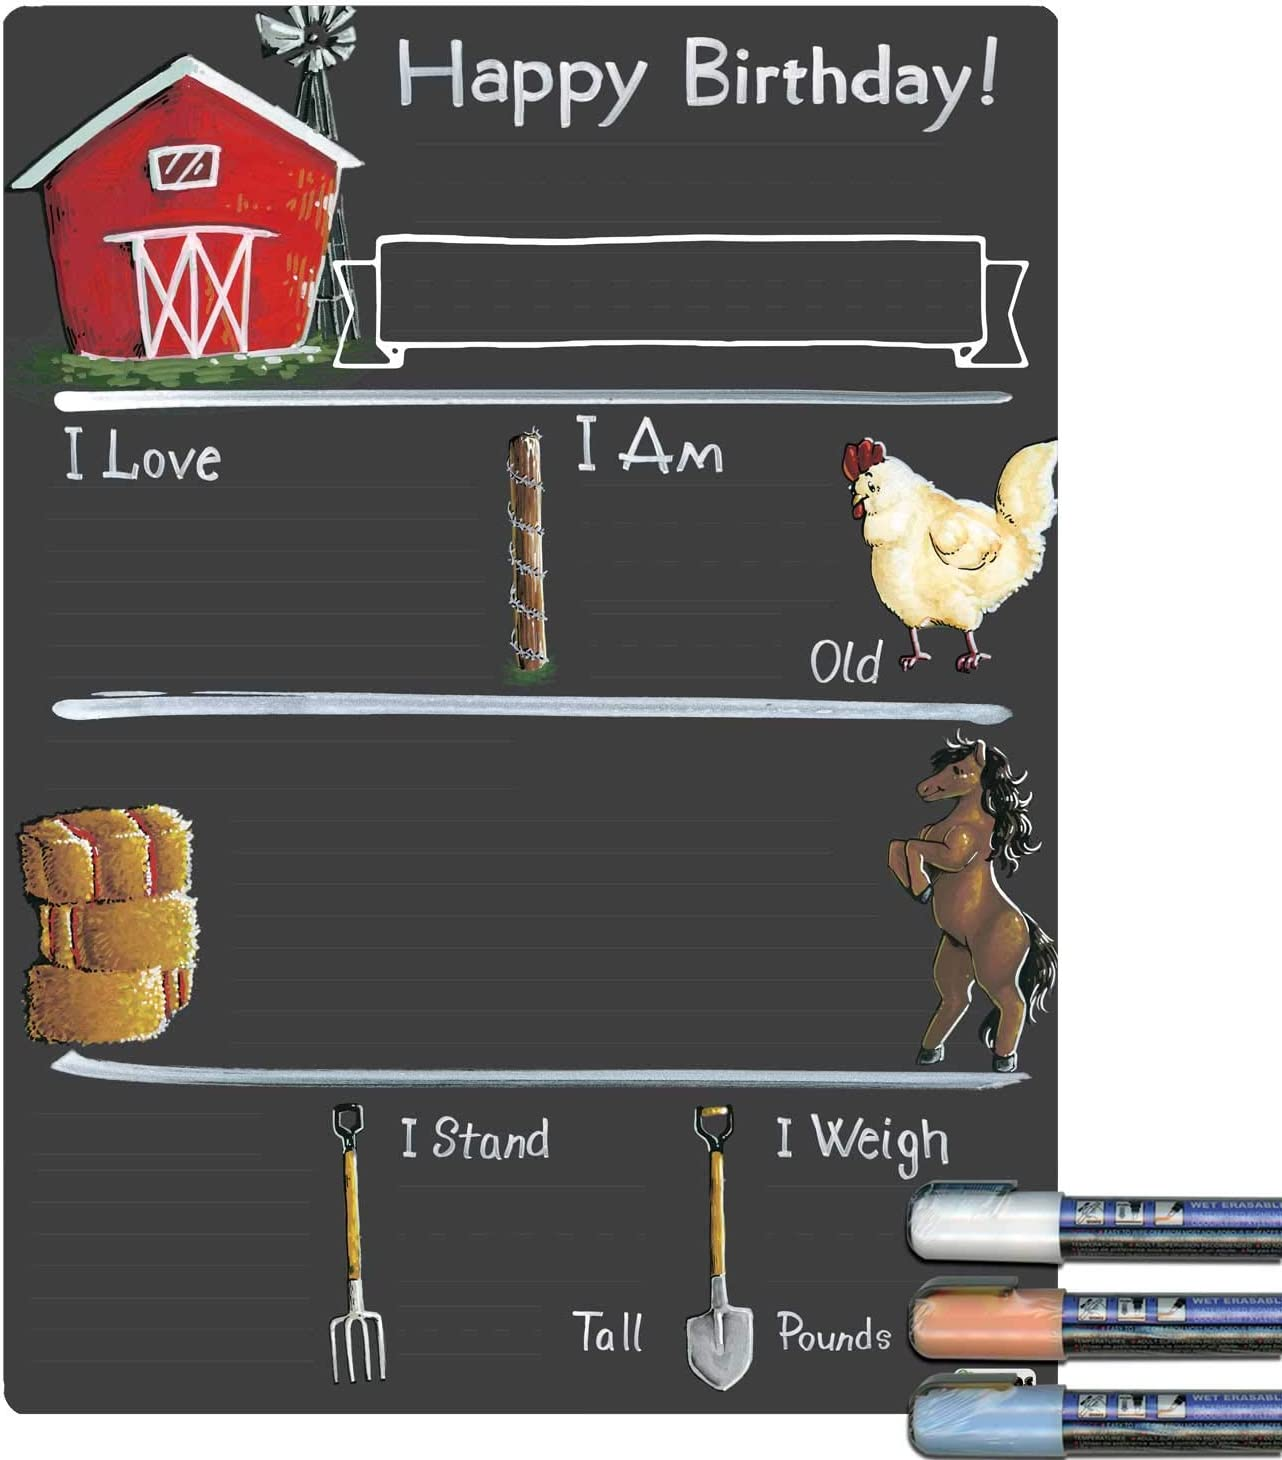 Cohas Birthday Milestone Board with Farm Theme and Reusable Chalkboard Style Surface 9 by 12 Inches White Marker